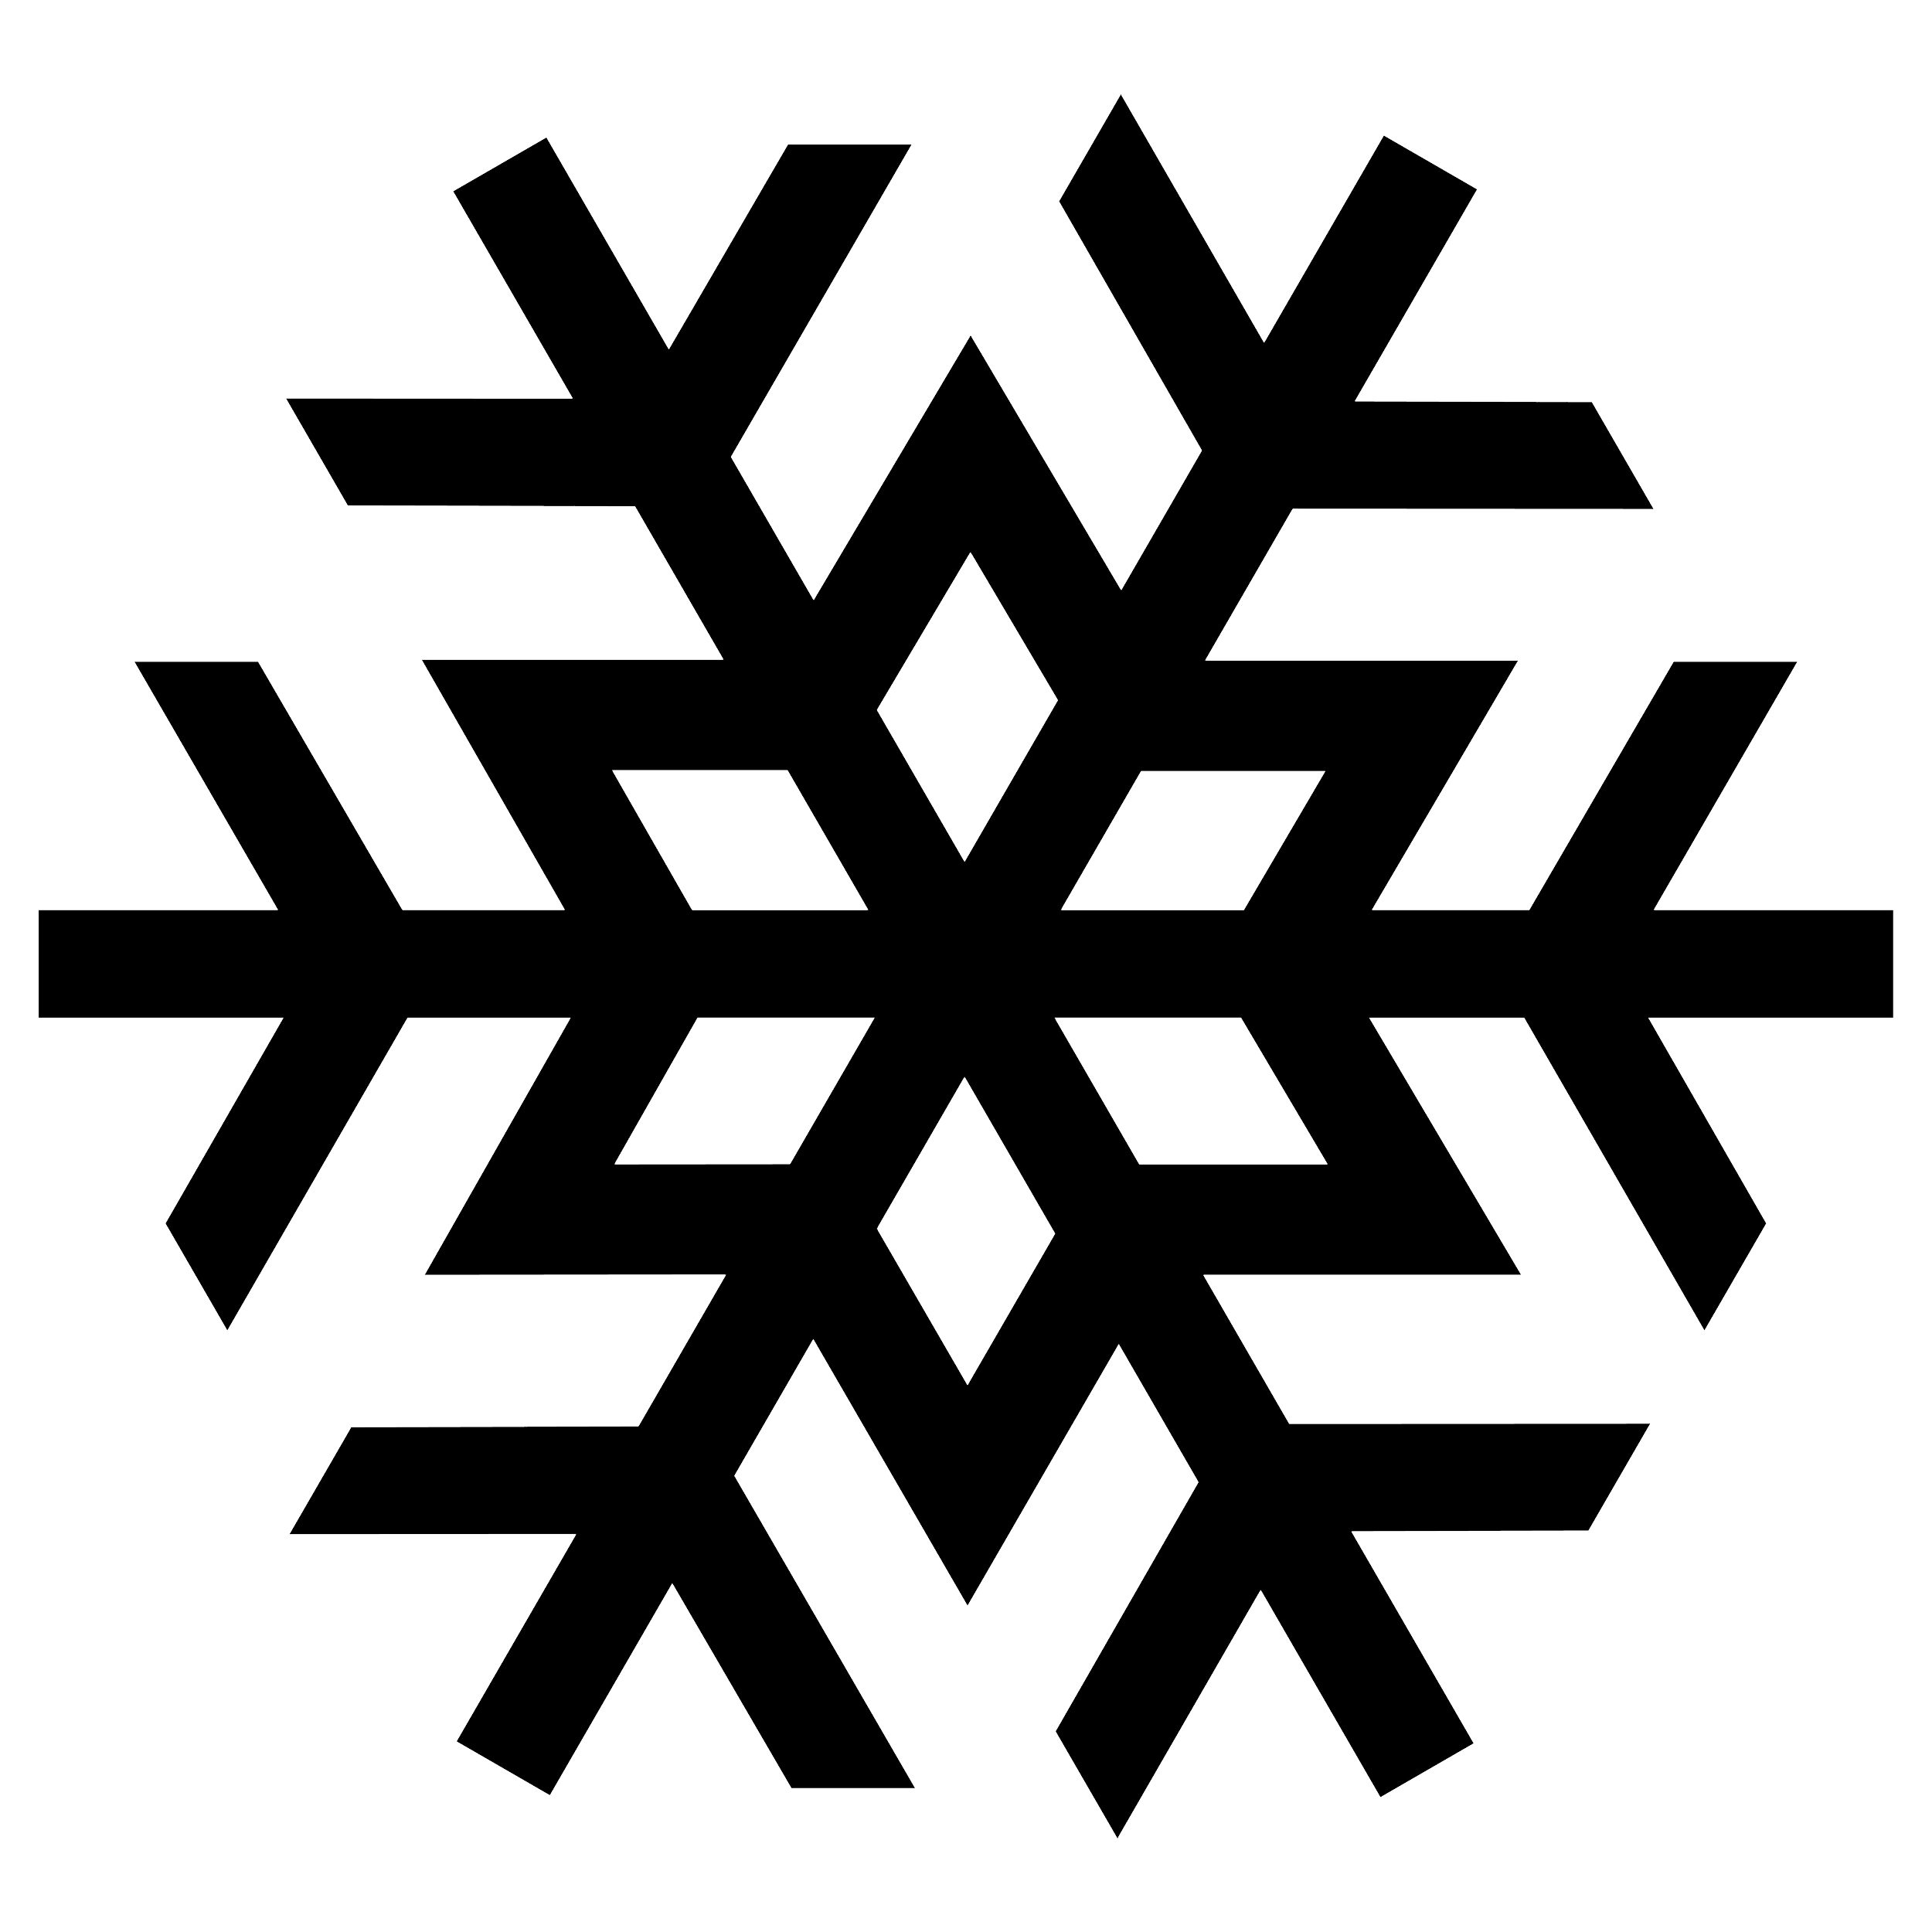 Snowflake silhouette PNG image Wzory